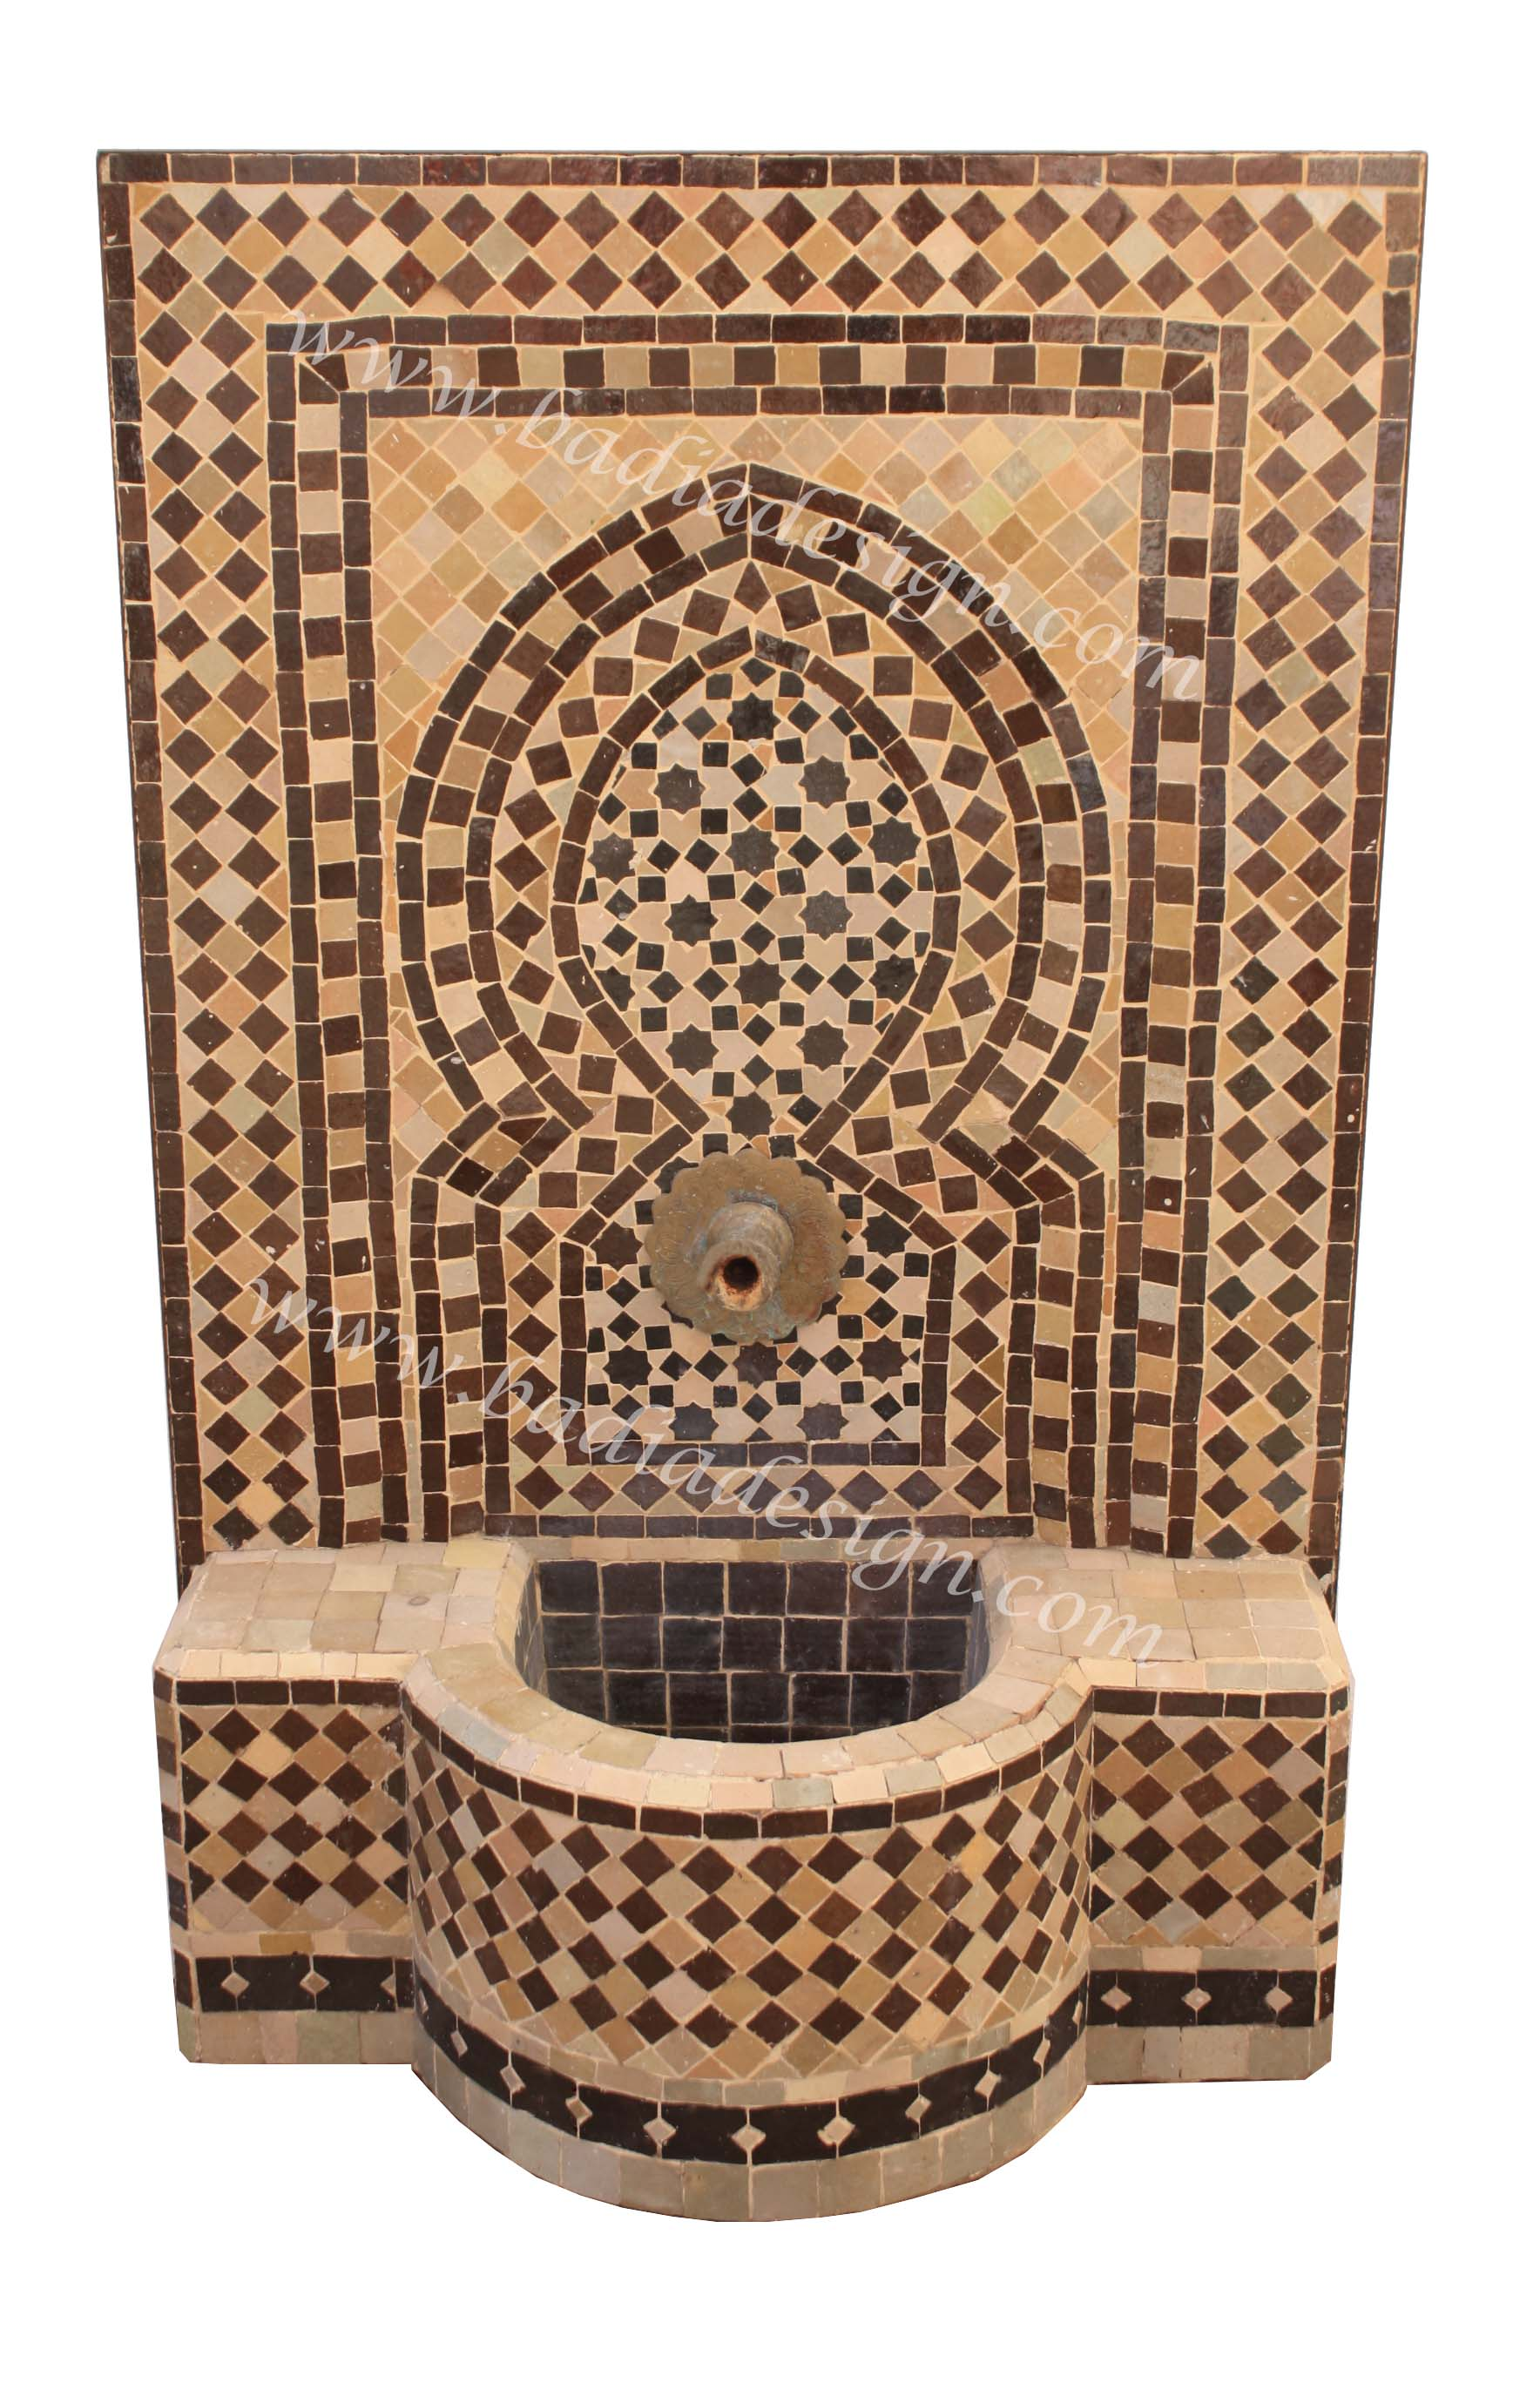 moroccan-mosaic-water-fountain-mf653.jpg